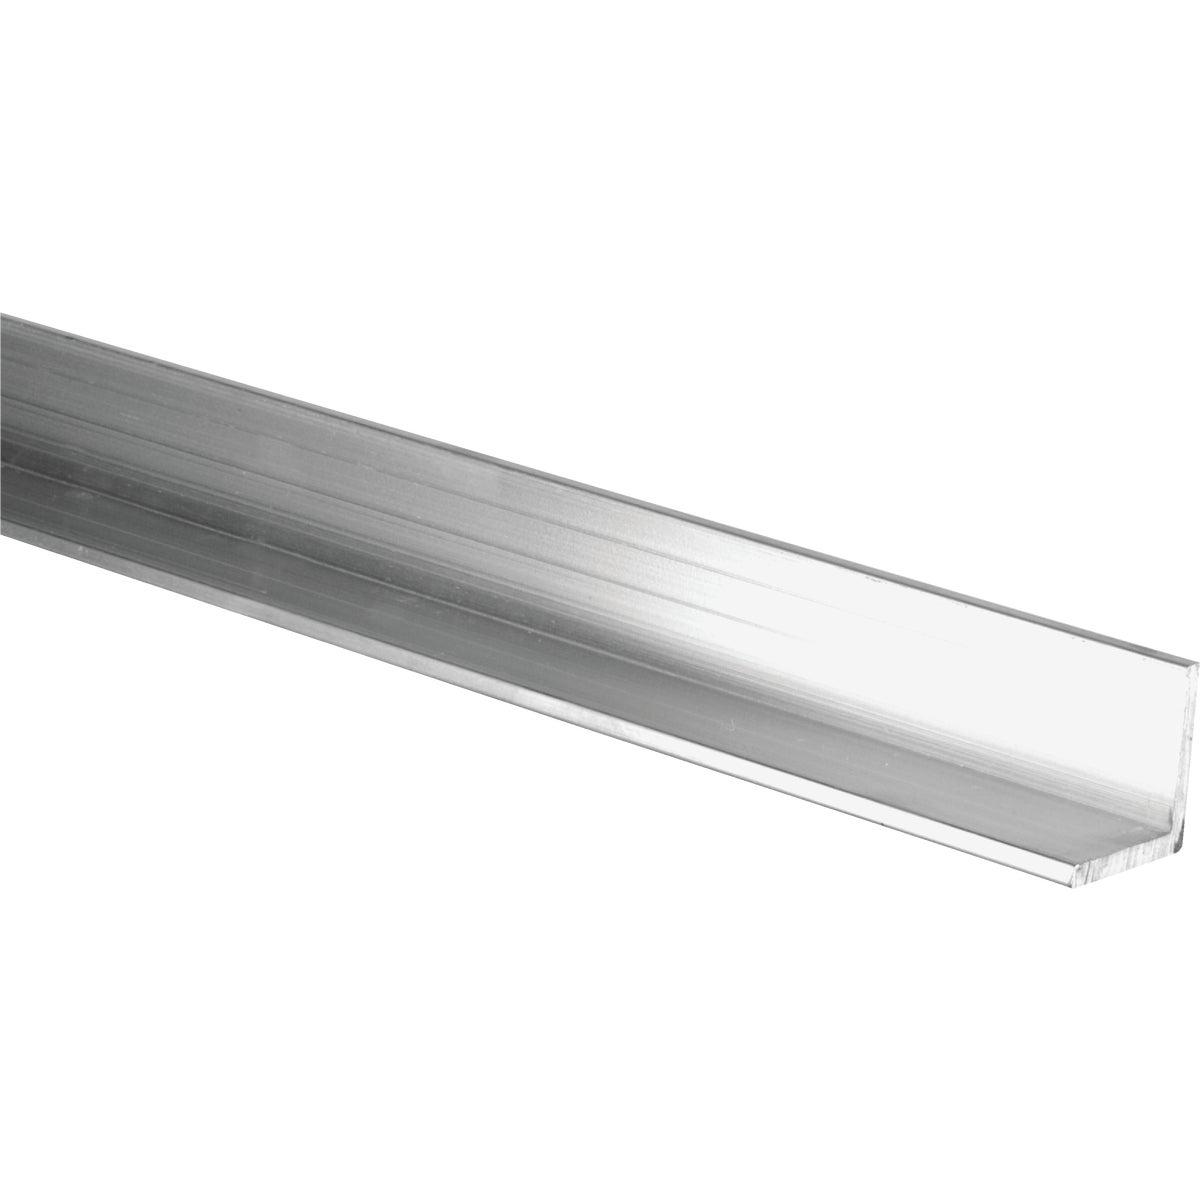 1/8X1-1/2X8' ALUM ANGLE - N258384 by National Mfg Co